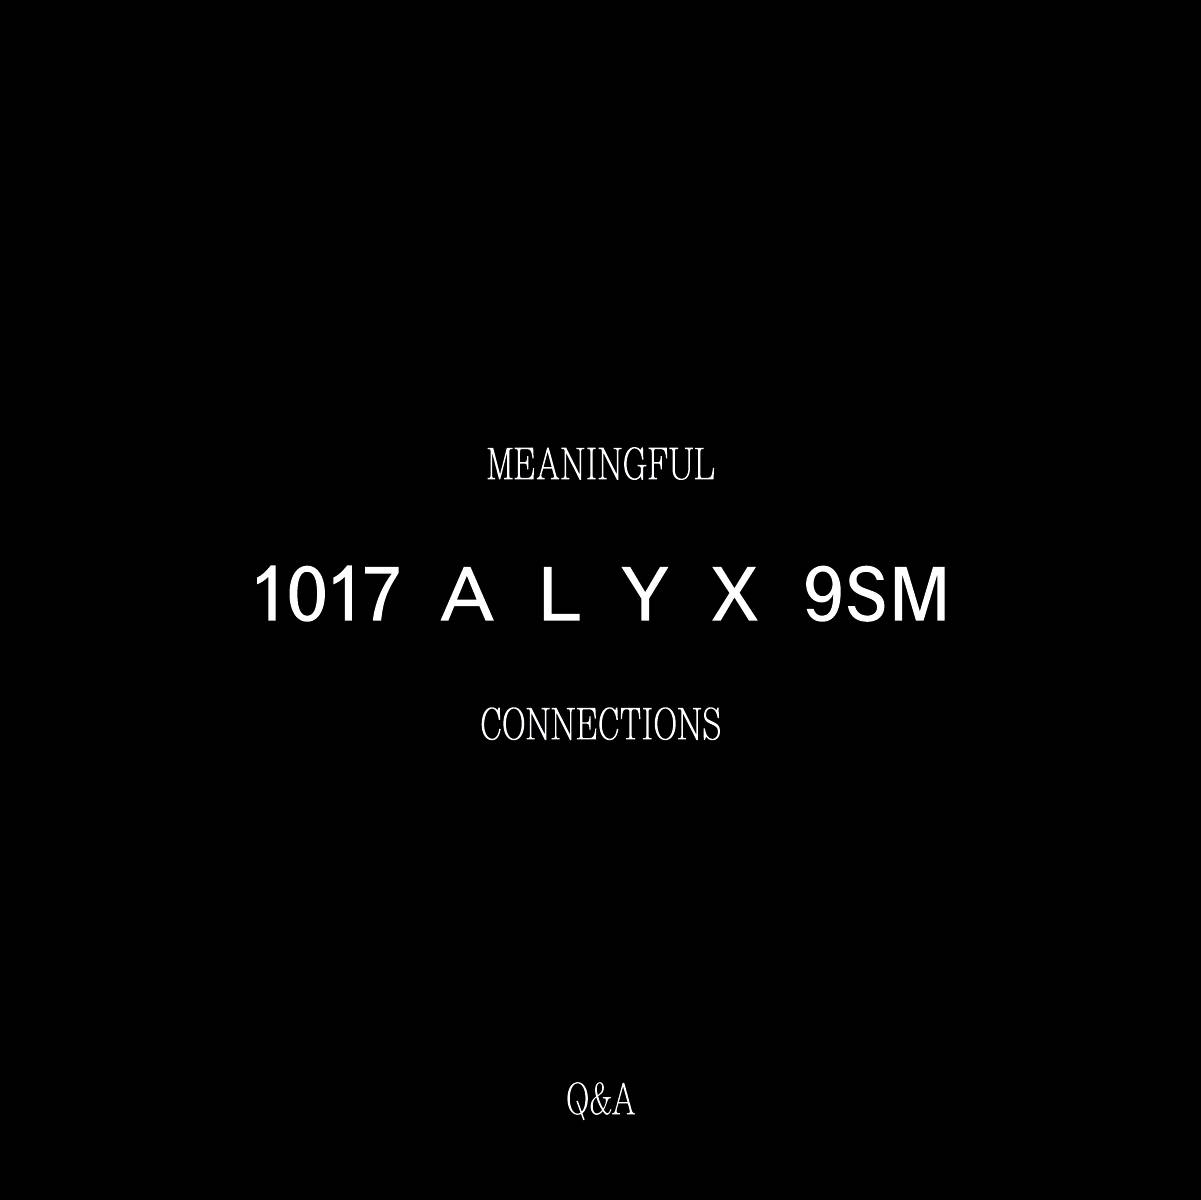 1017 ALYX 9SM - Meaningful Connections - Q&A